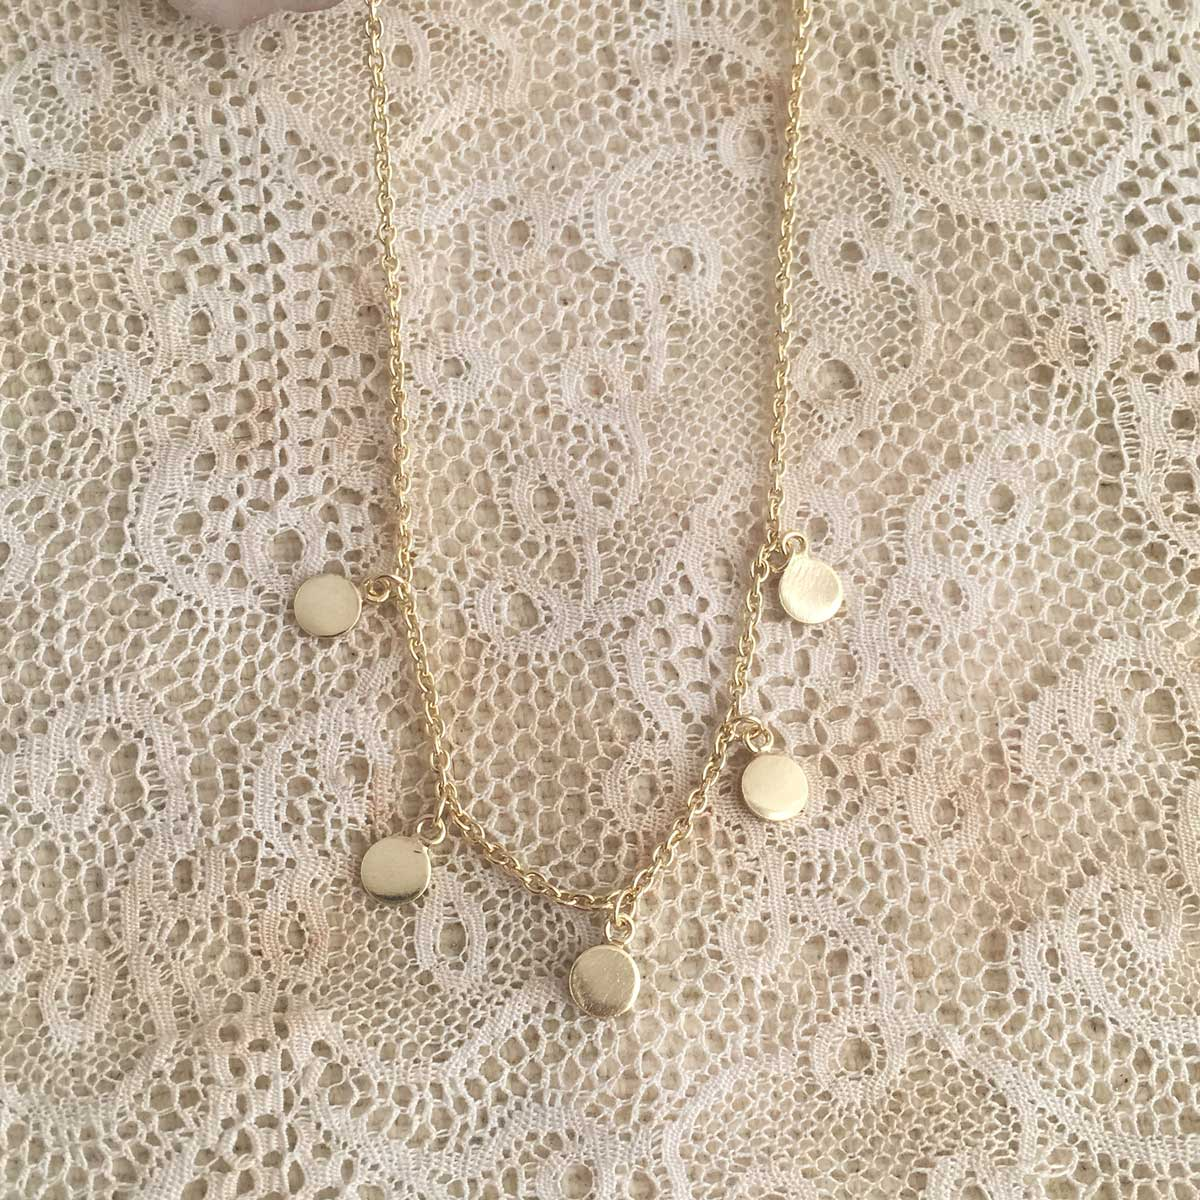 'five coin' necklace | 24k gold-plated